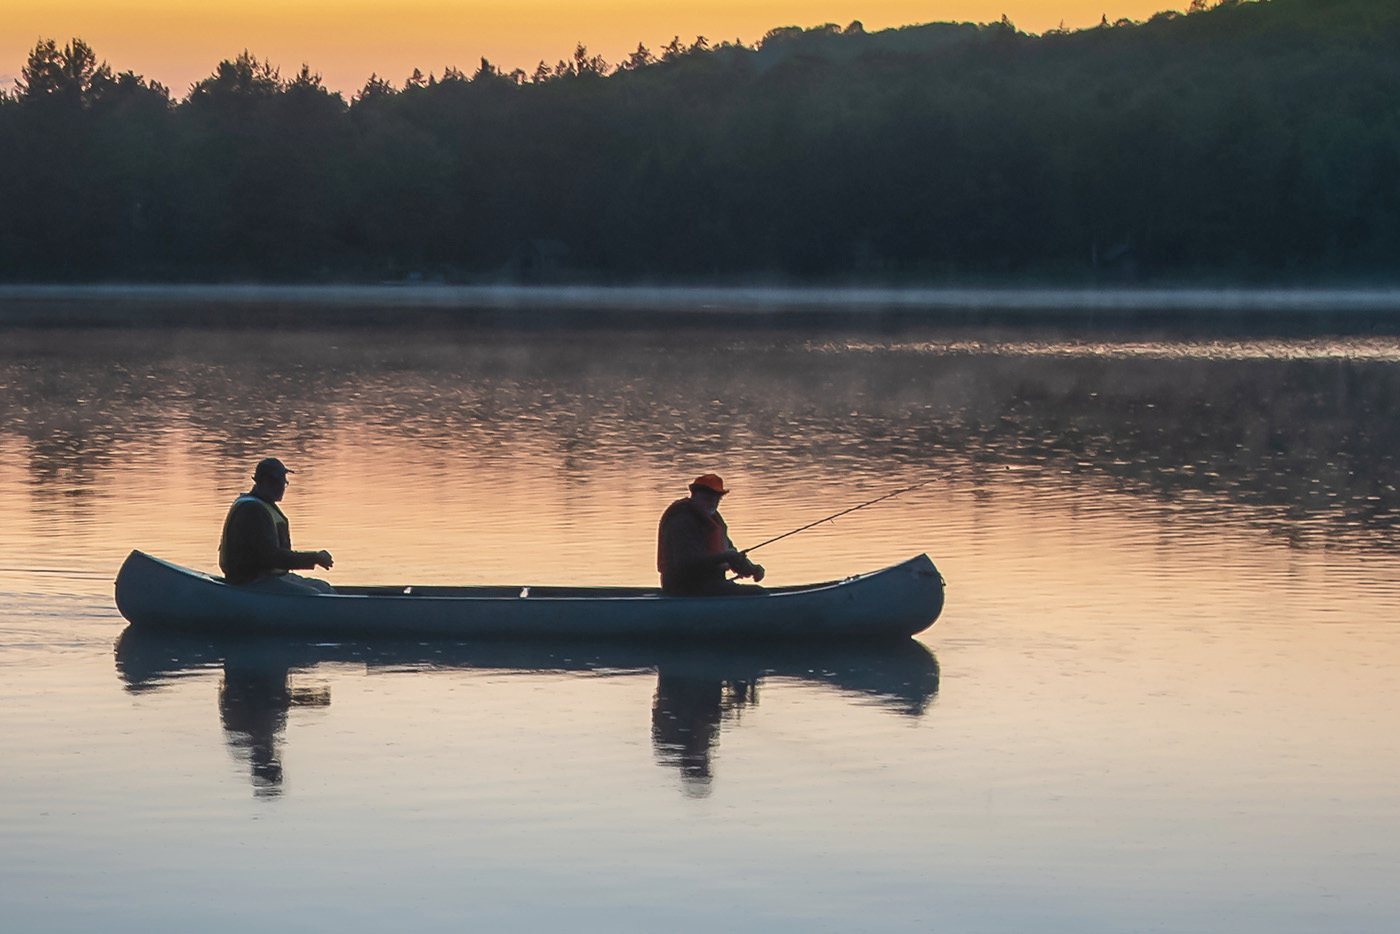 Messing about in boats | NCPR News